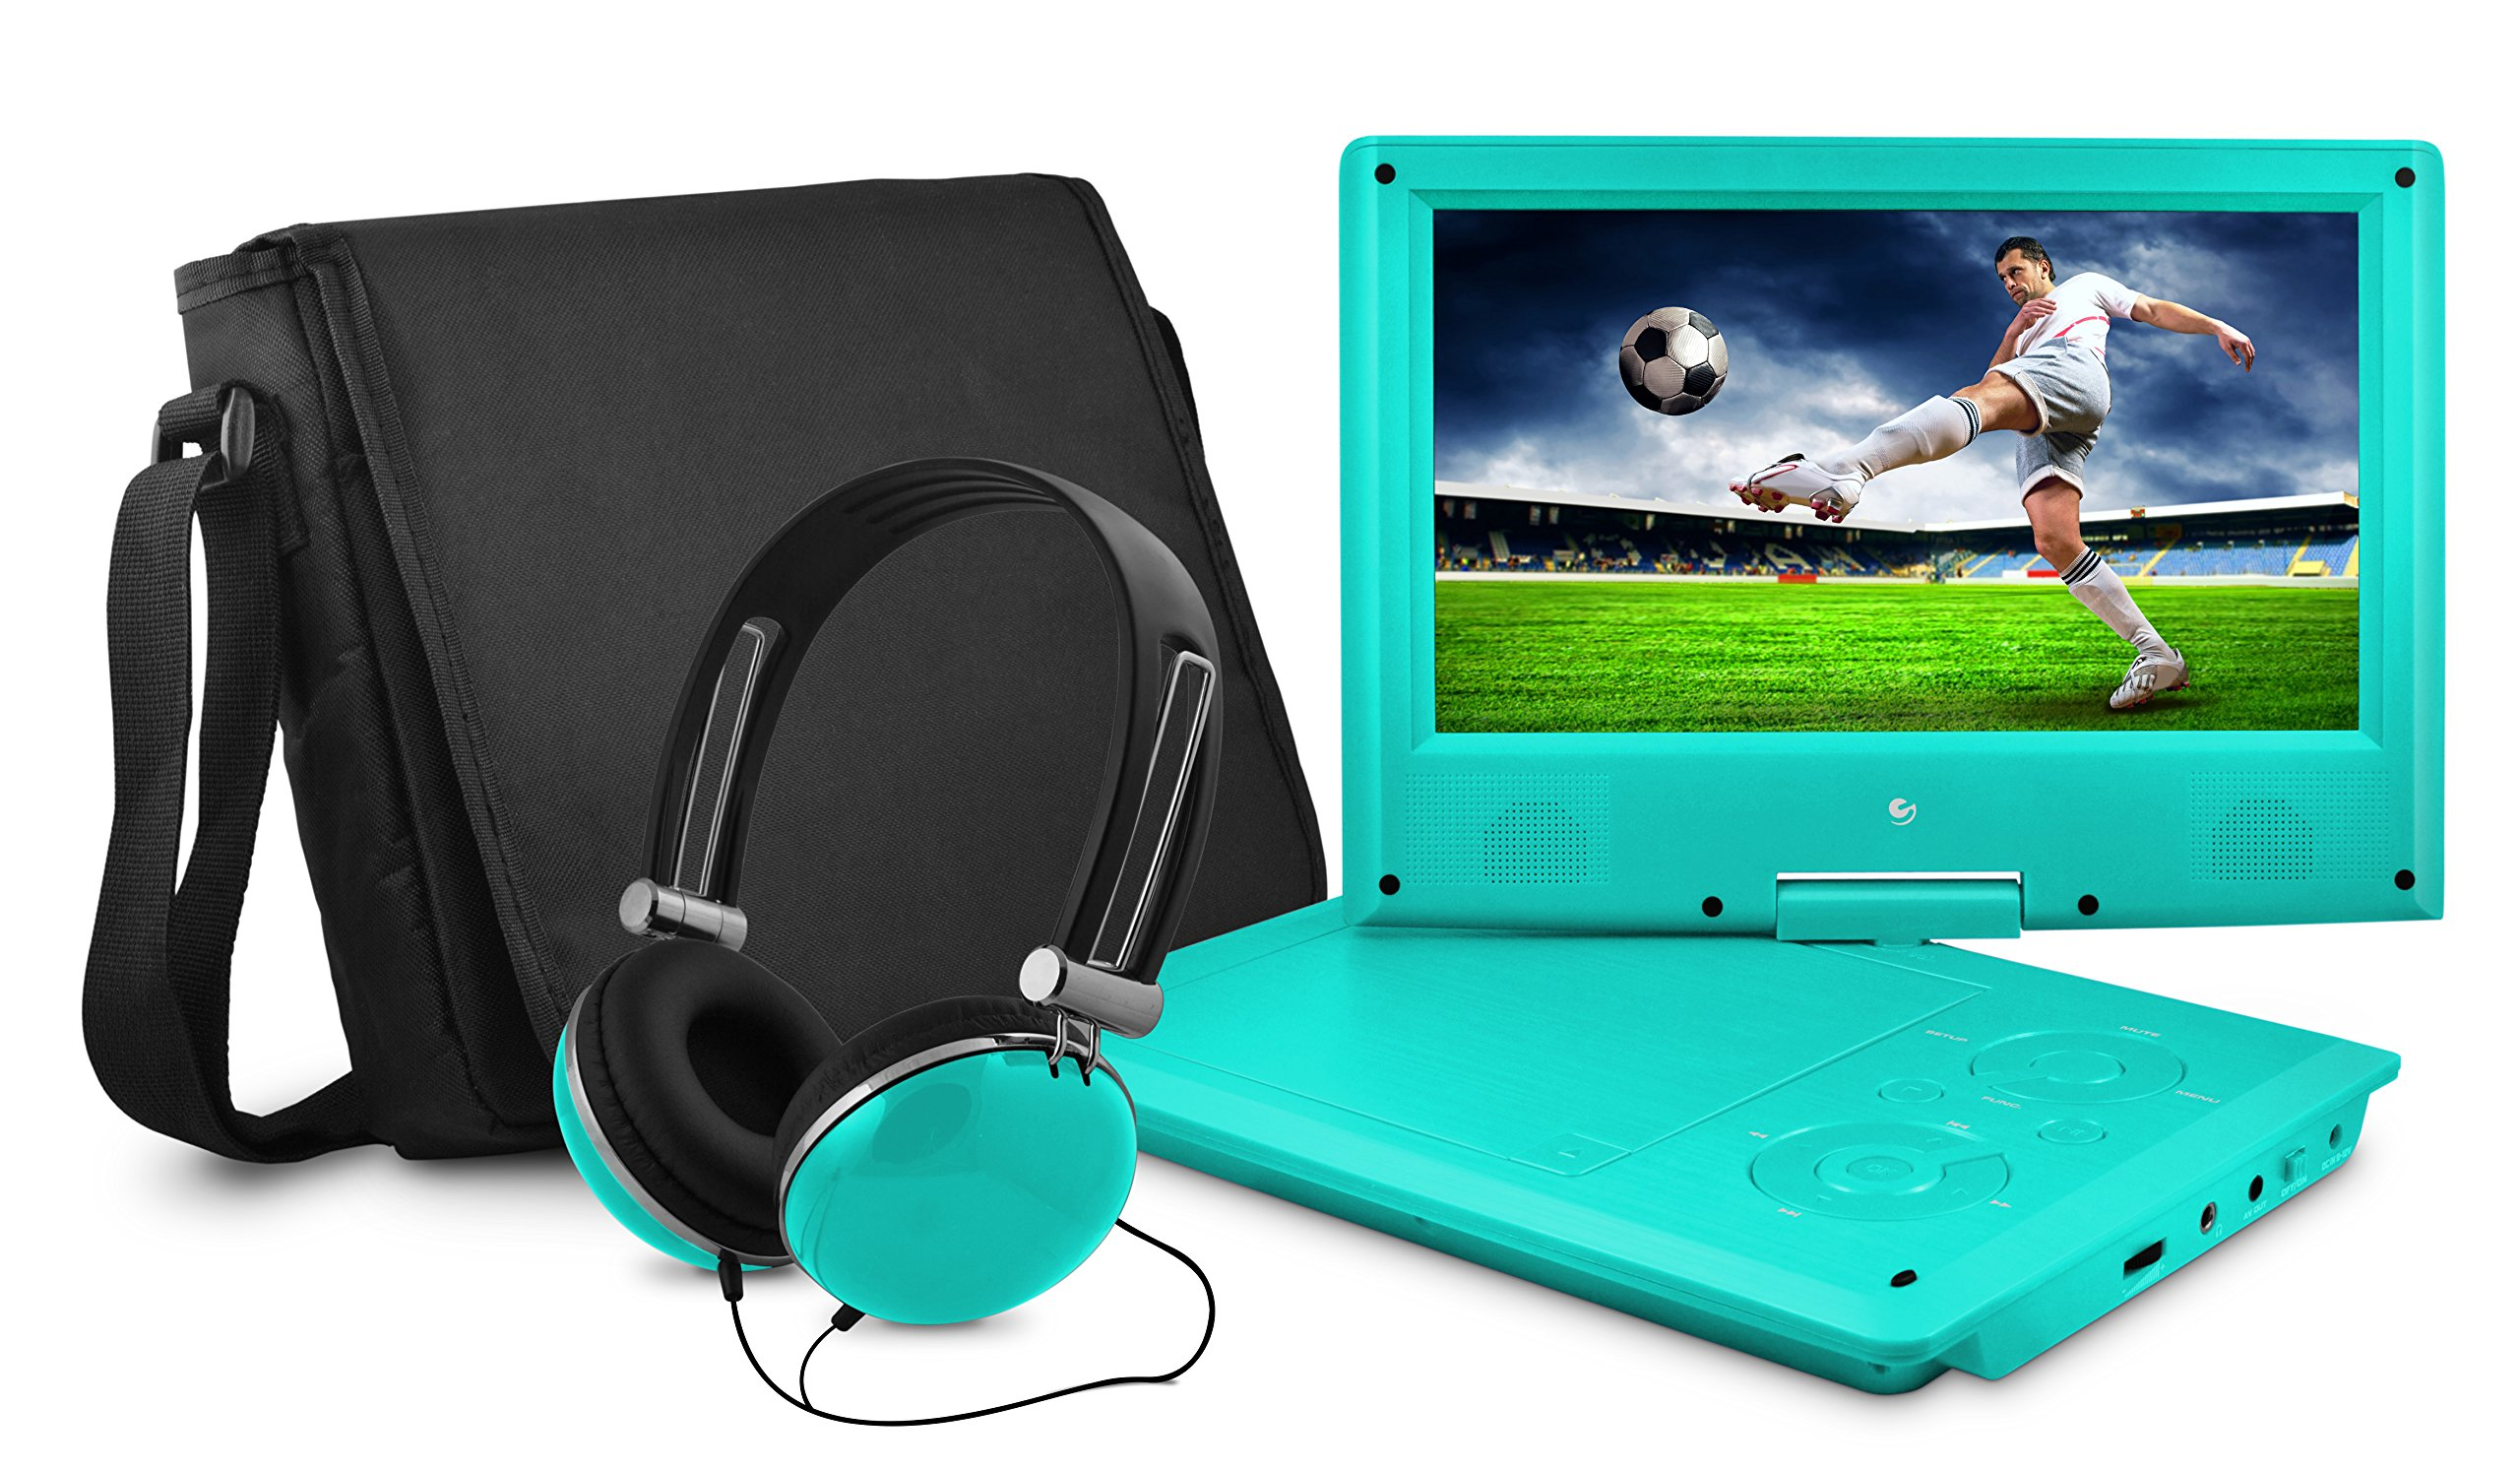 Ematic Portable DVD Player with 9-inch LCD Swivel Screen, Travel Bag and Headphones, Teal